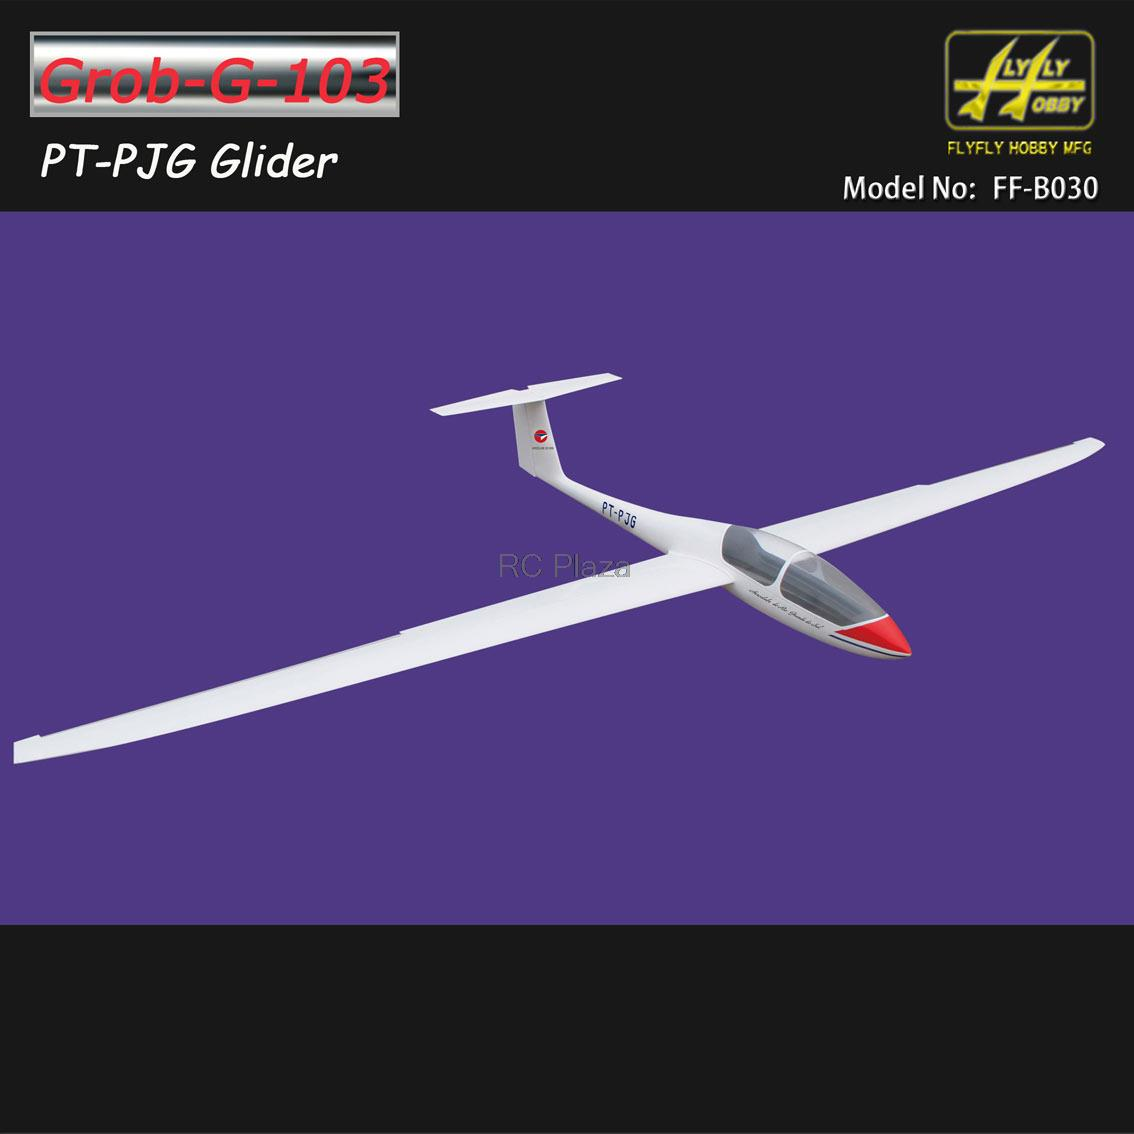 Grob-G-103 Slope Glider PT-PJG with brake 3000mm ARF without electric part RC sailplane ls8 18 sailplane eps 2000mm pnp without battery